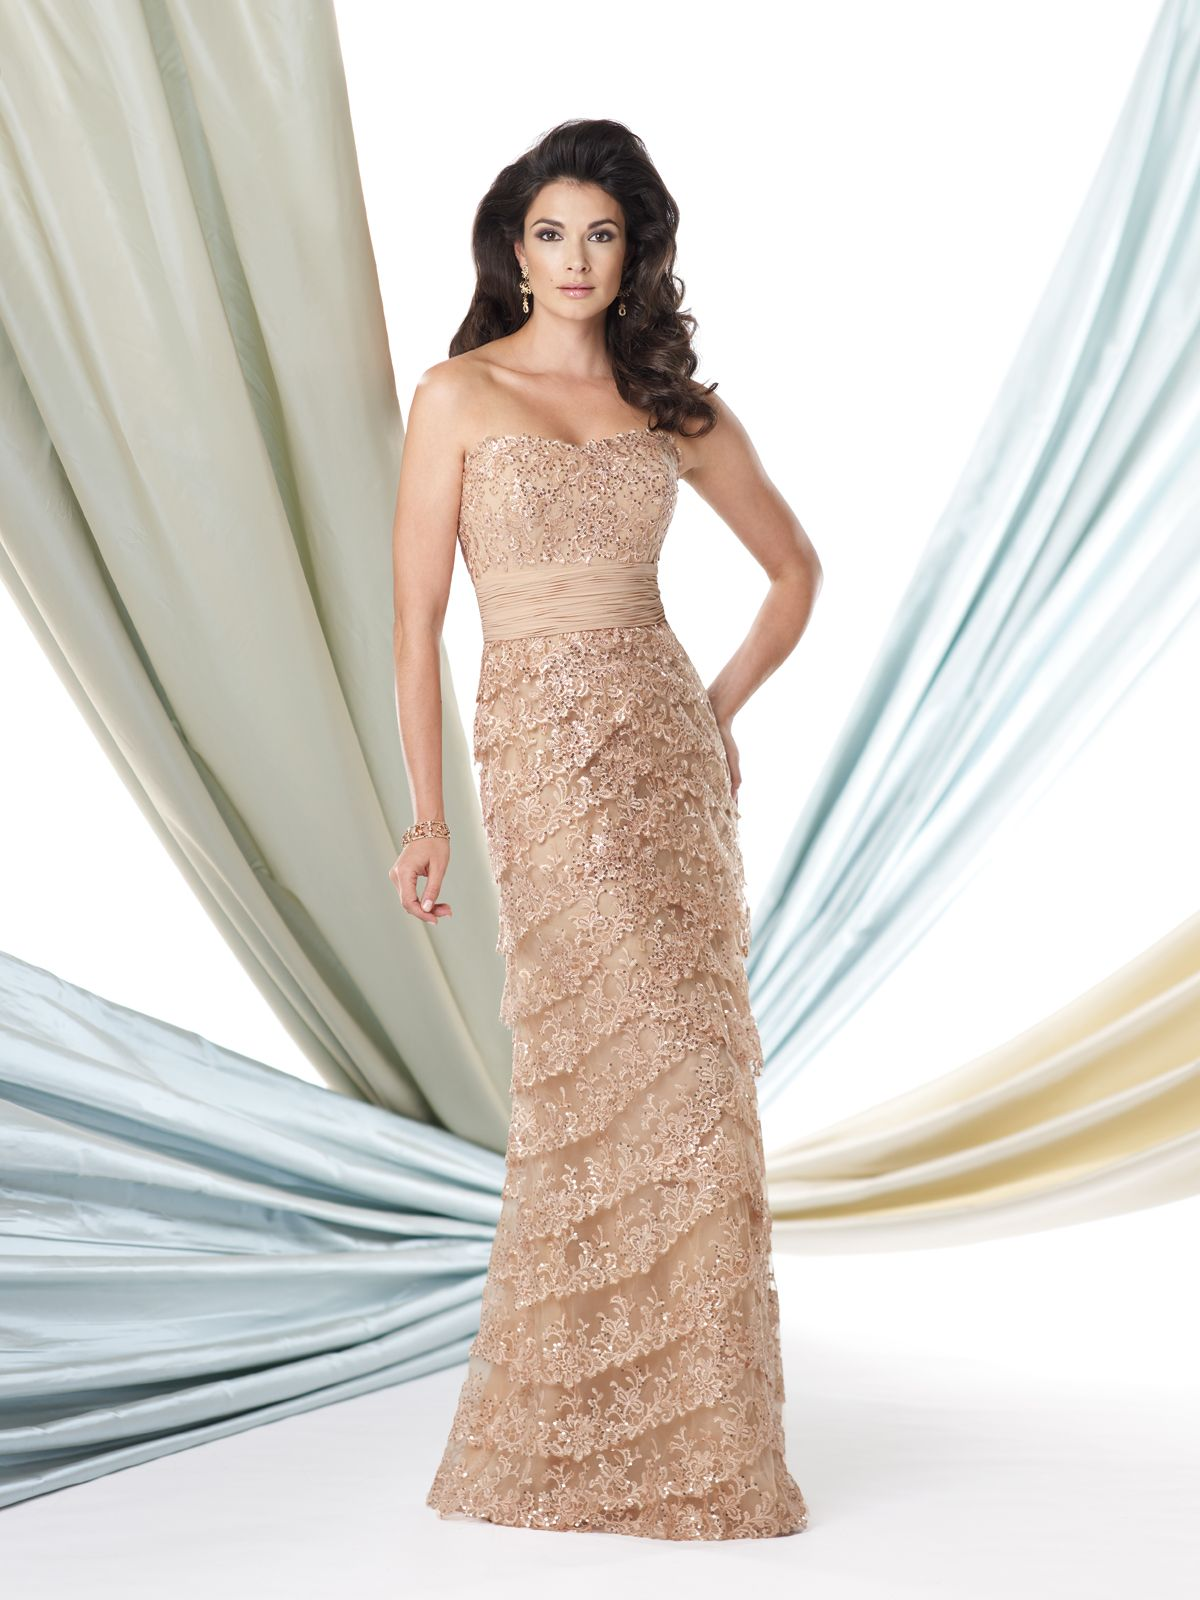 Strapless sequin lace and chiffon slim aline dress with softly